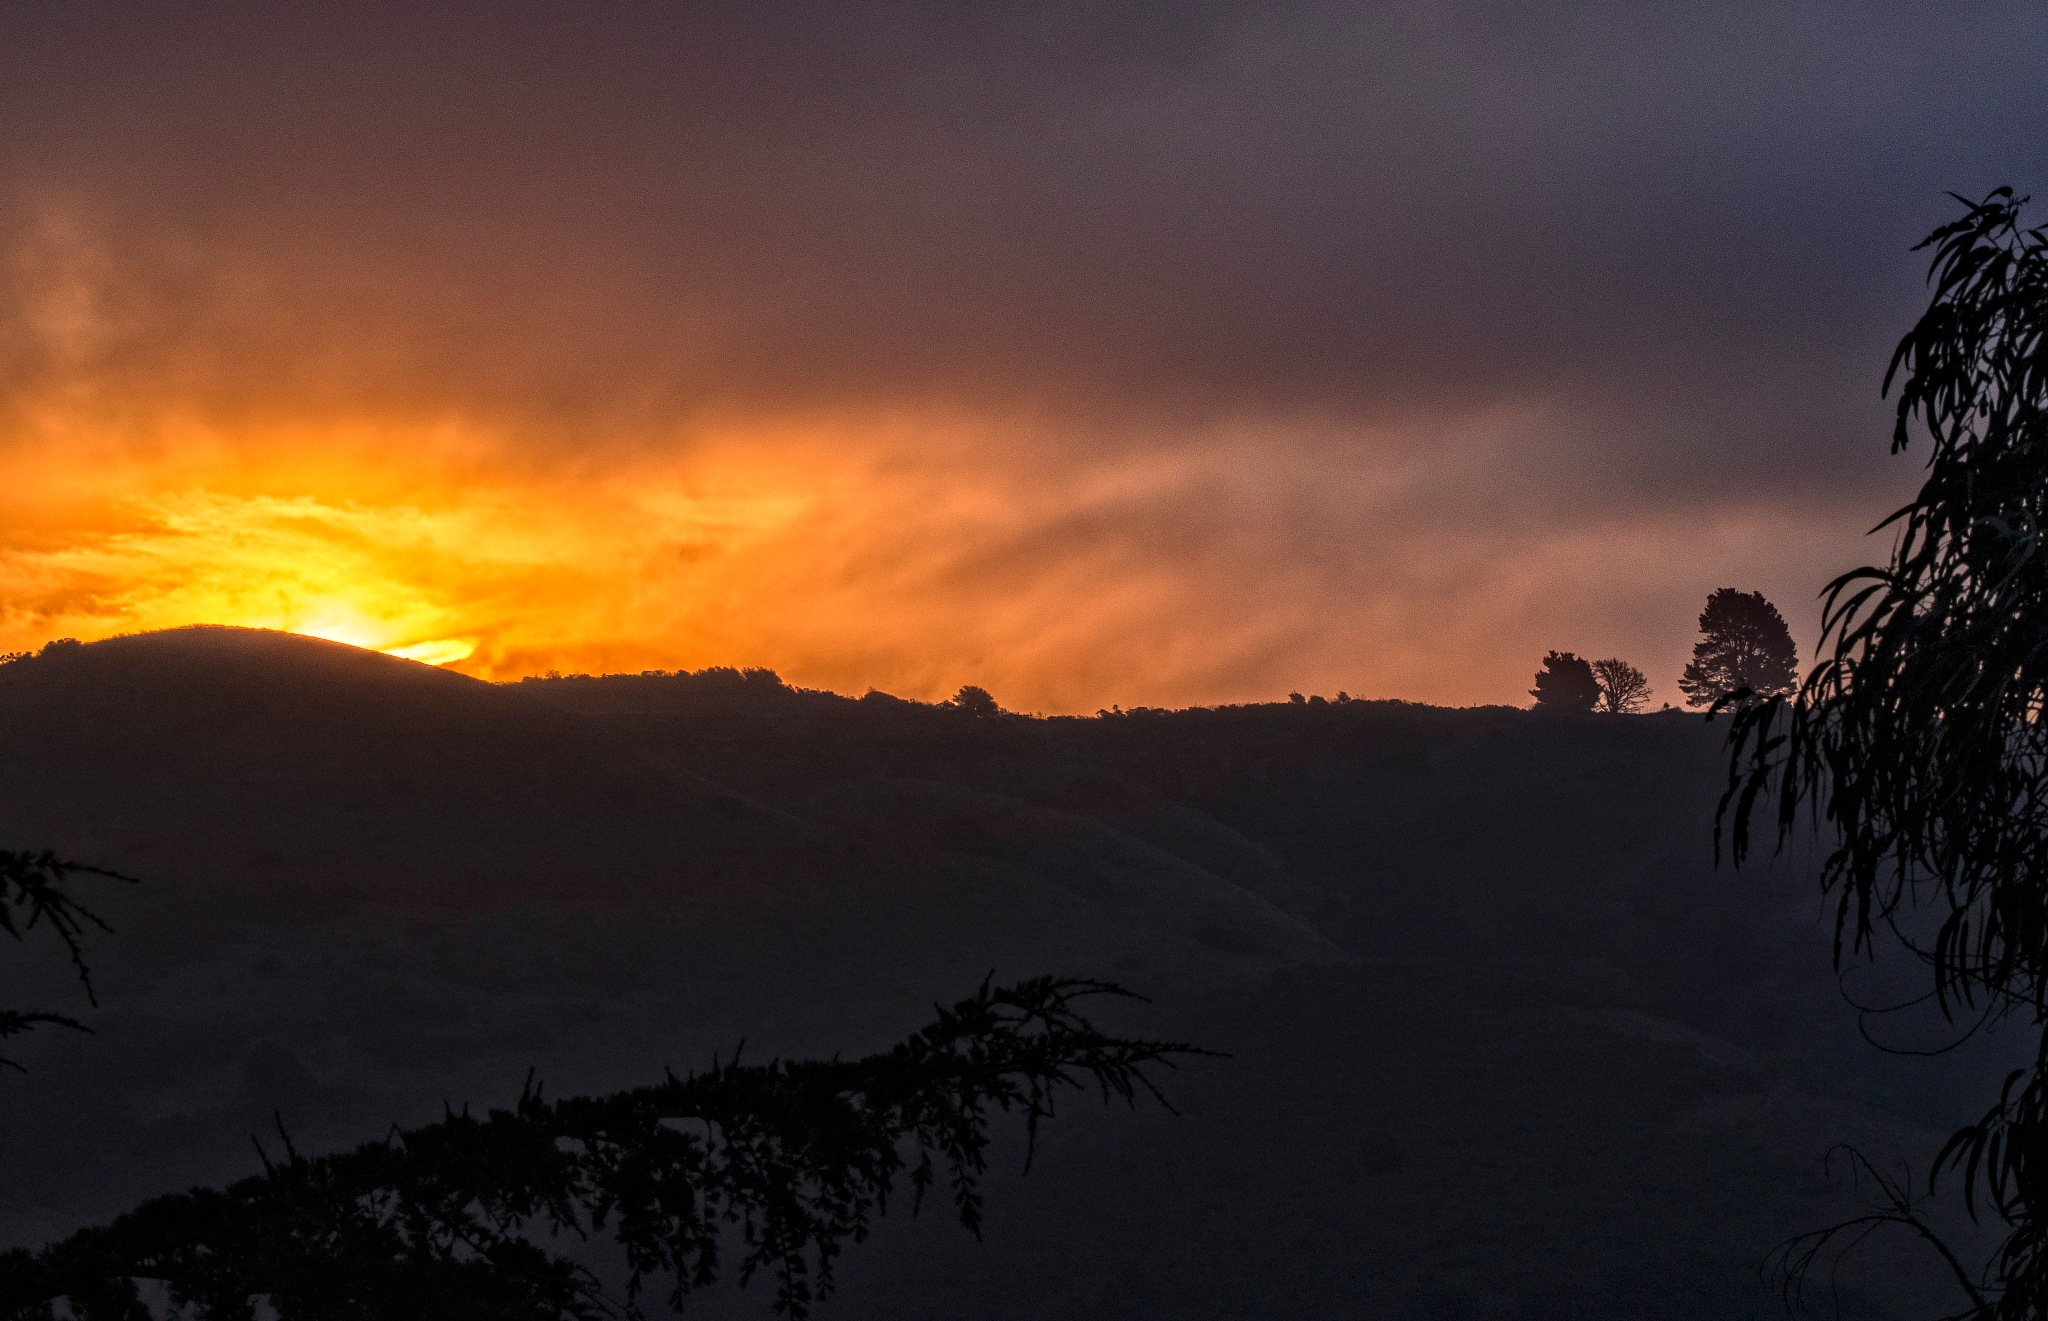 Sunrise from the Decrepit Deck by photocoach